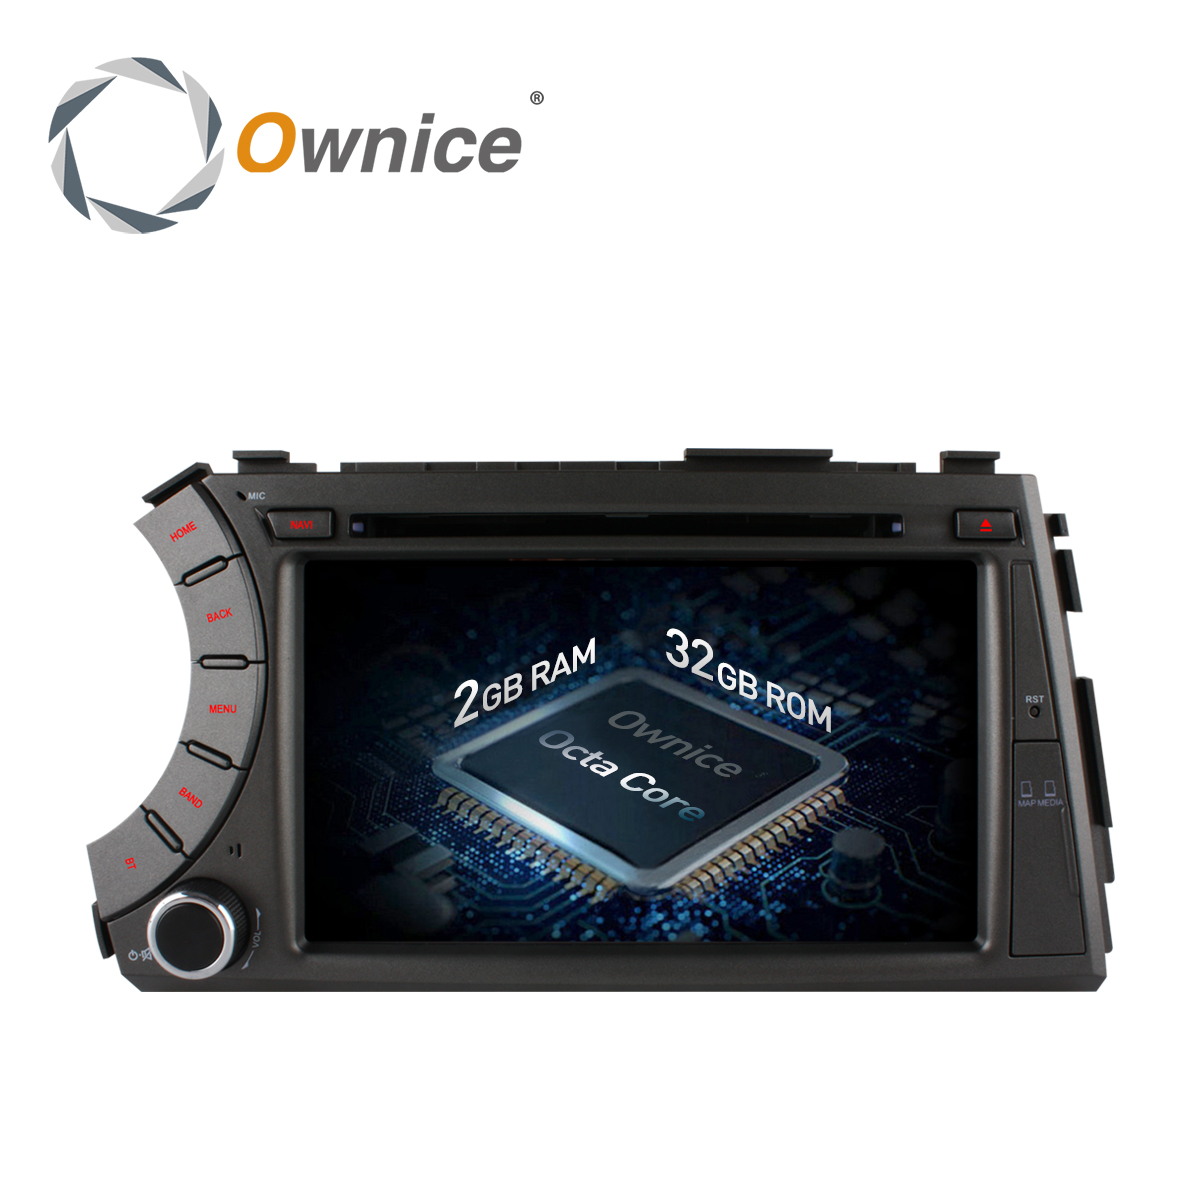 Ownice C500 Octa 8 Core Android 6.0 Car DVD for ssangyong Actyon Kyron with car gps radio wifi 2GB RAM 32GB ROM Support 4G LTE ownice c500 g10 octa core 2gb ram 32g rom android car dvd 8 1 gps for mazda 6 summit 2009 2015 wifi 4g lte radio dab dvr